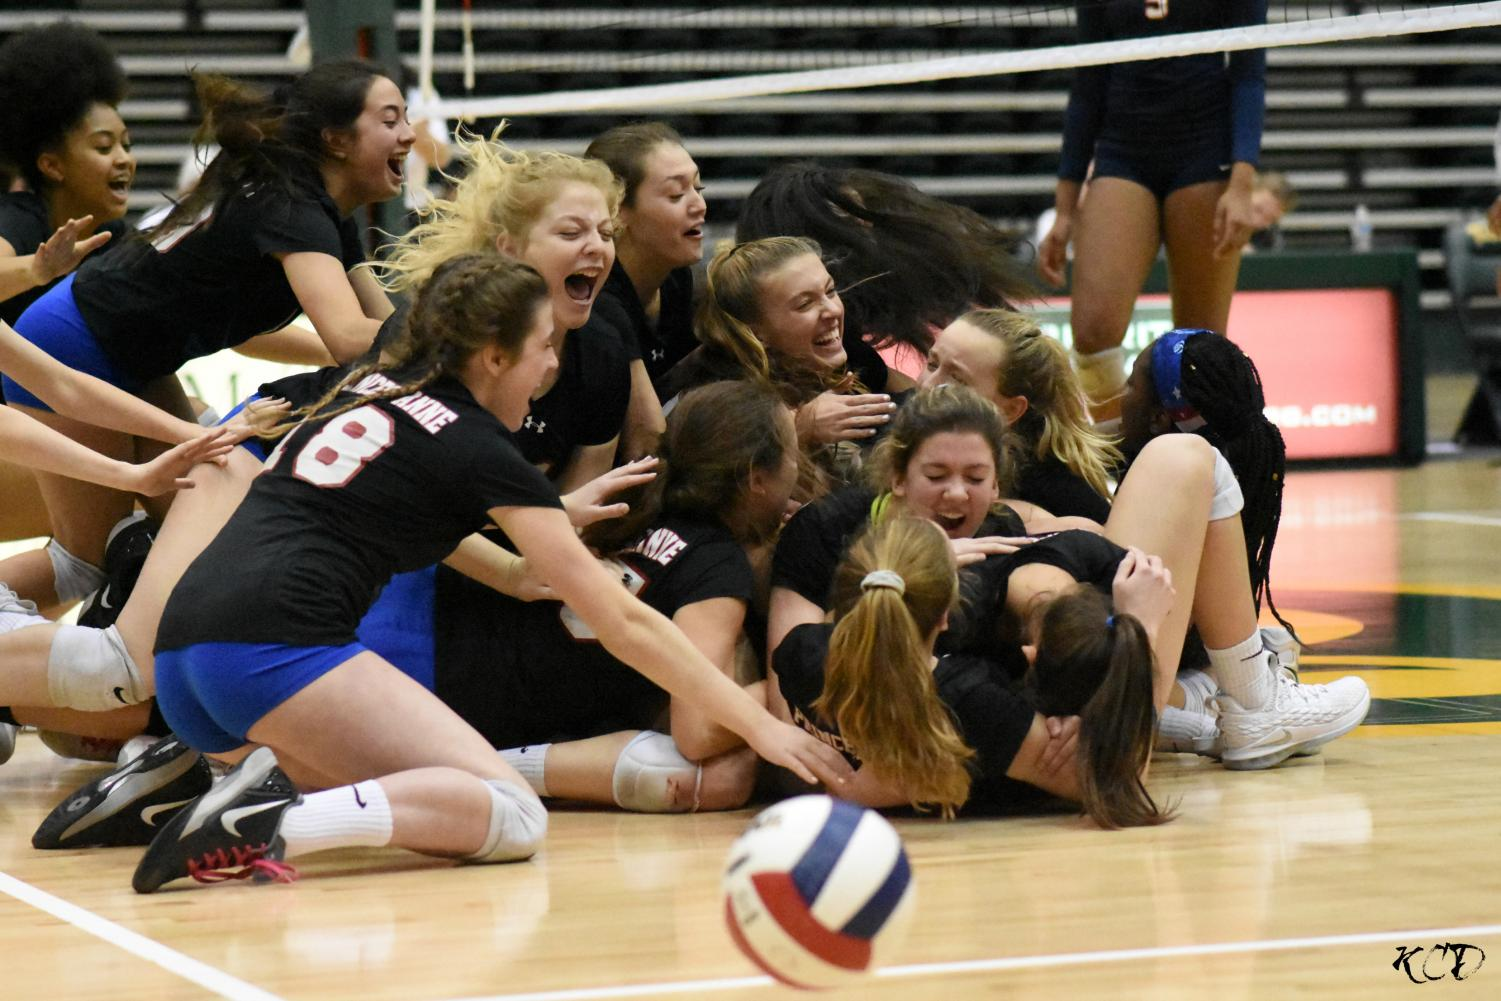 The team piles onto each other after the winning kill. (Photo by Kendra Drew)